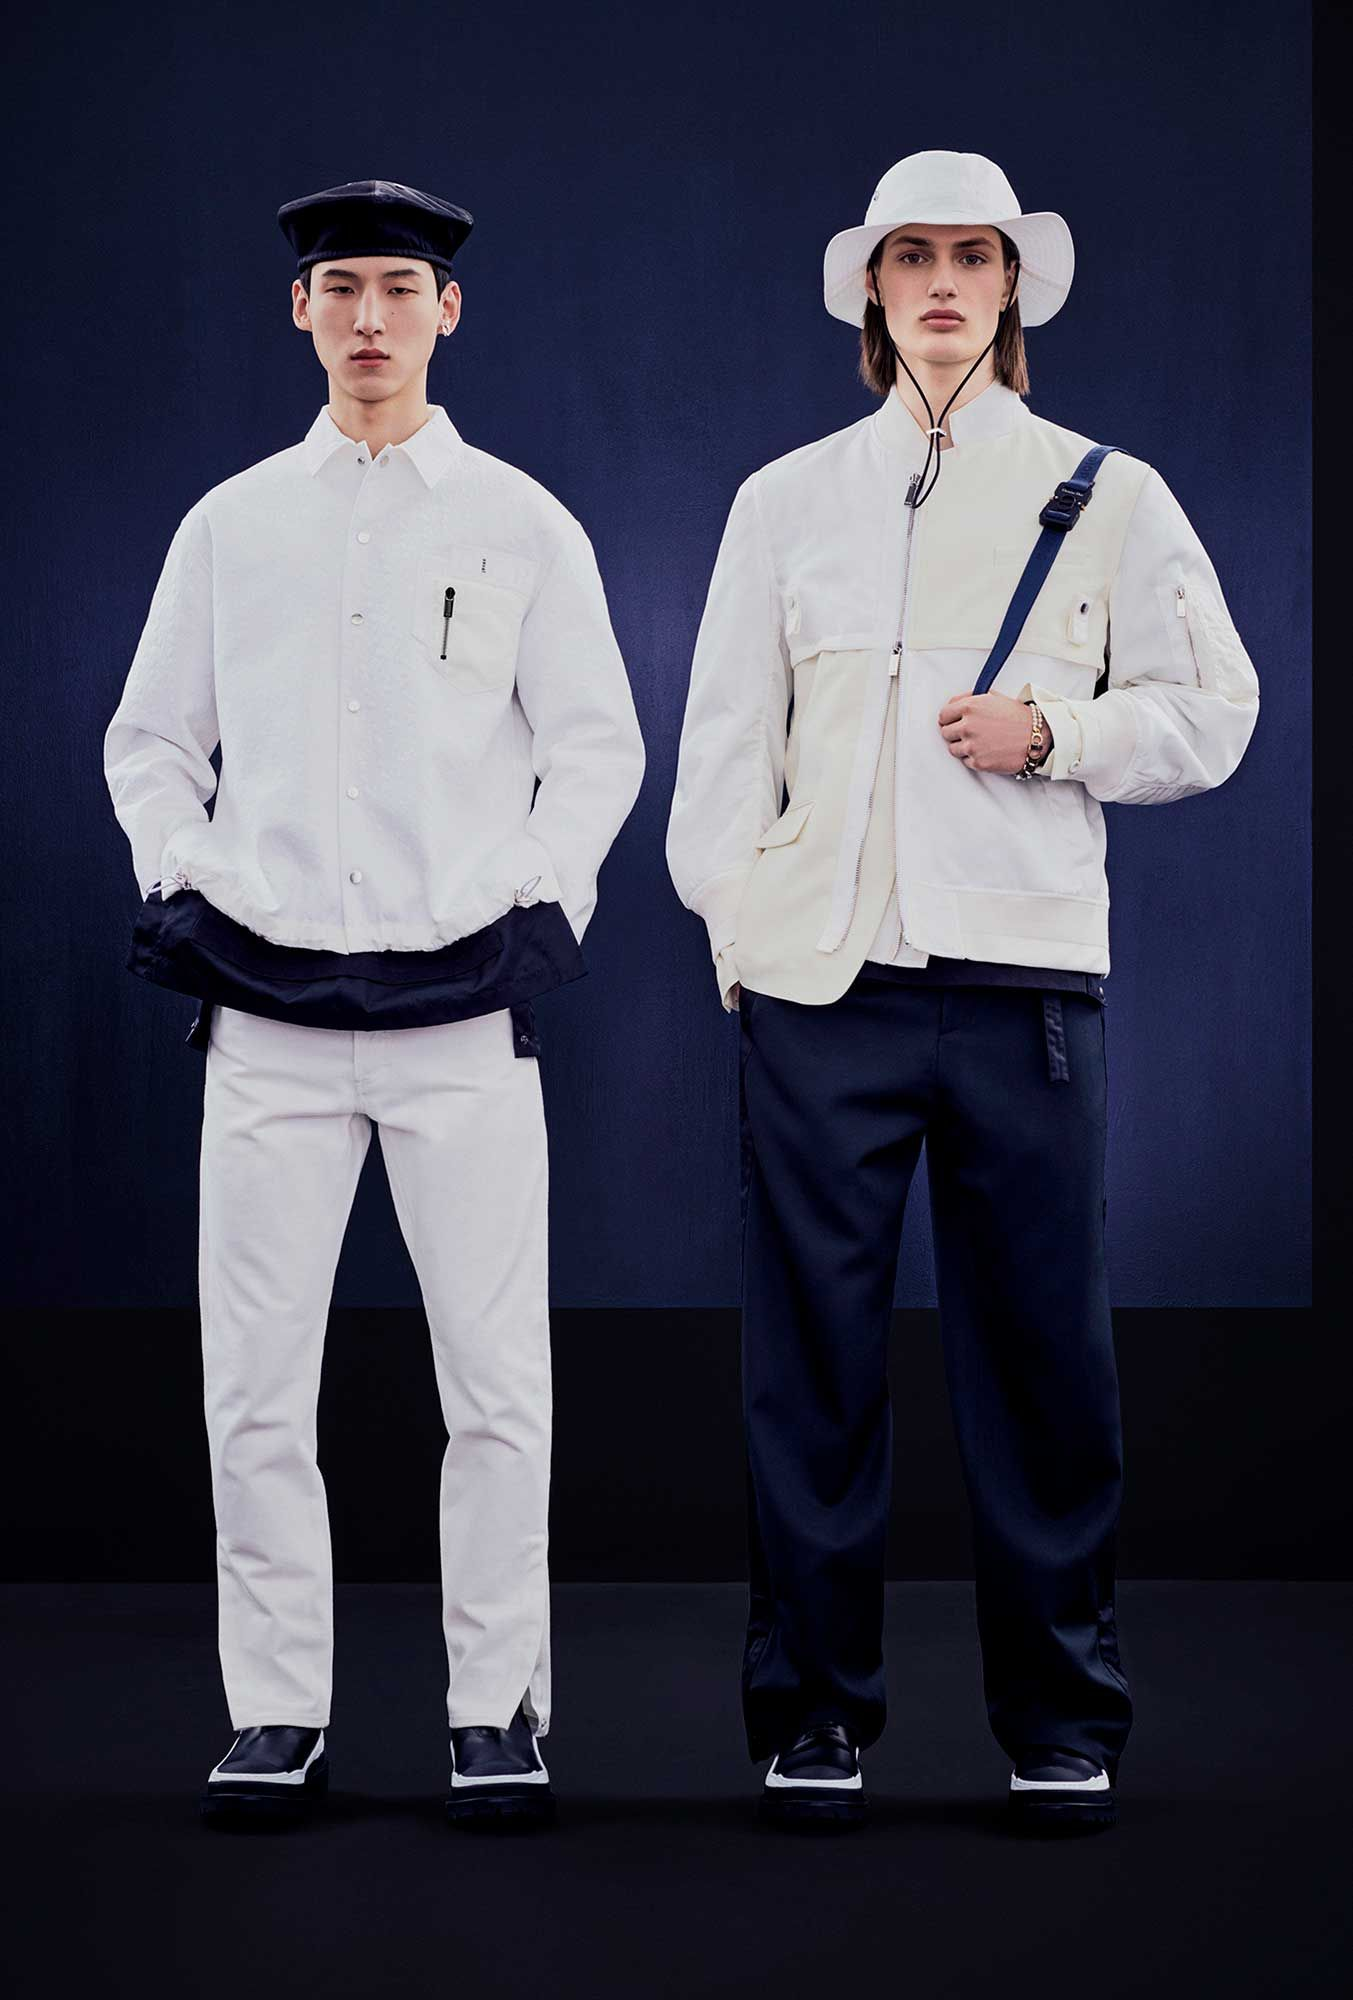 Dior Men's and Sacai Are Fashion's Next Hottest Collaboration